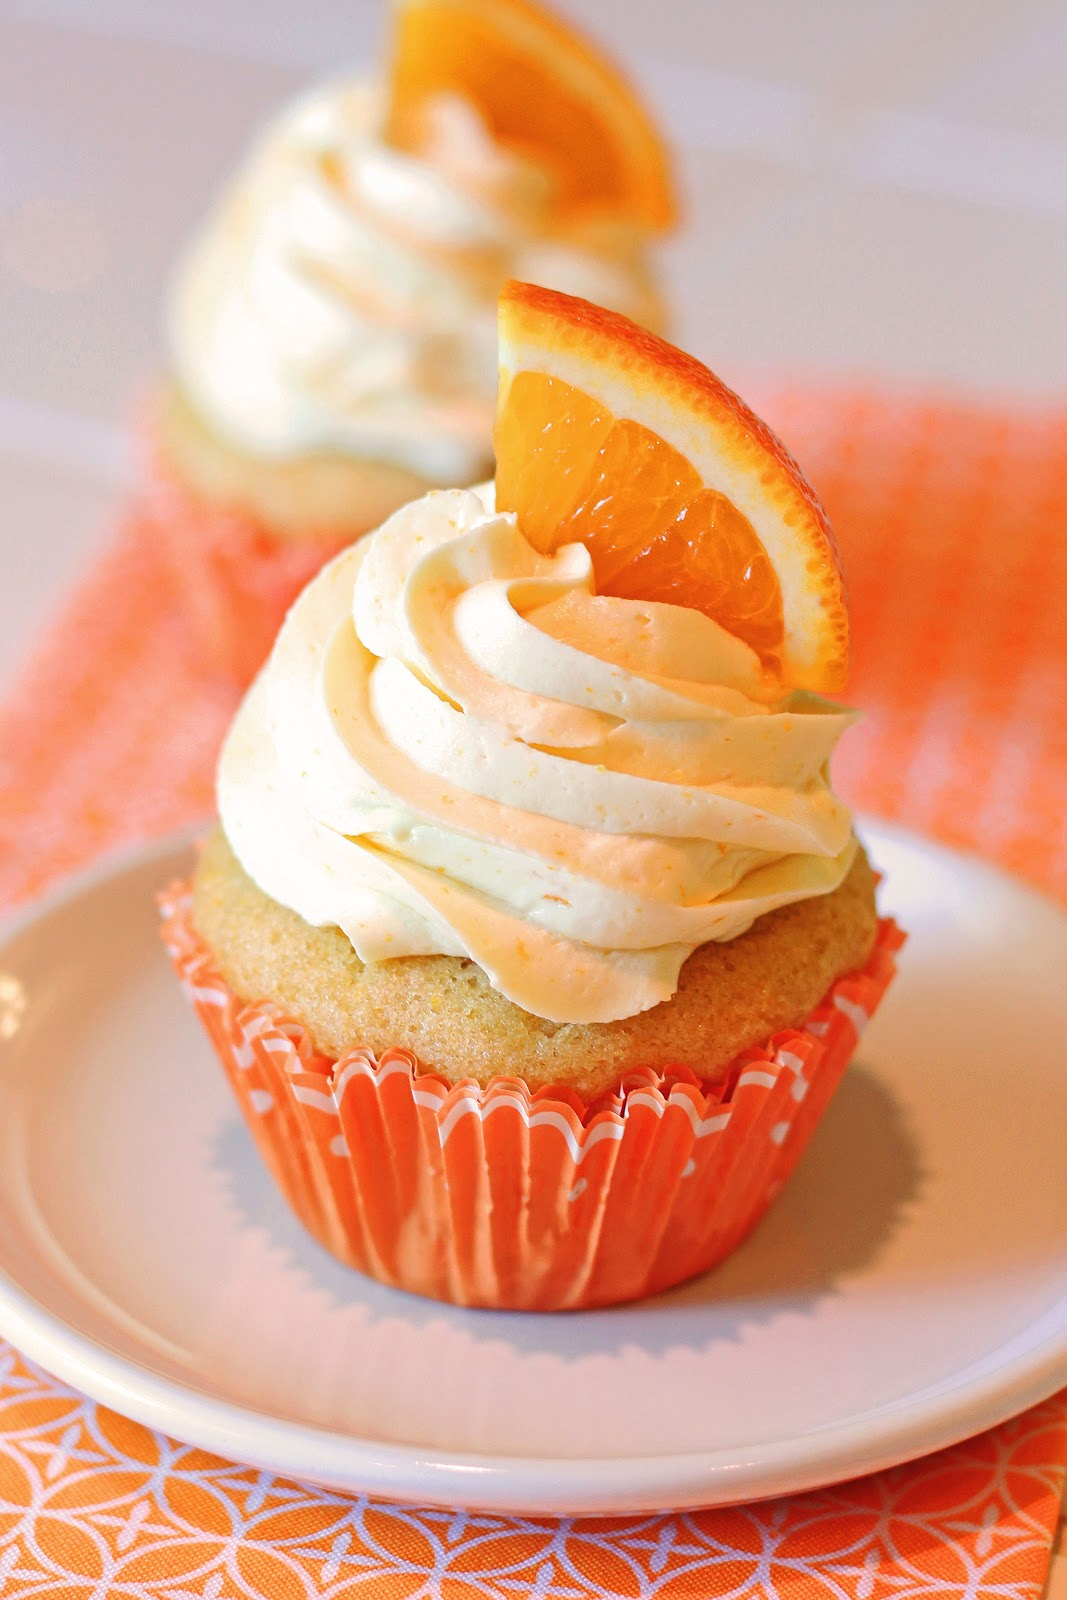 orange sl ice s orange vanilla bean cupcakes carrot cupcakes with ...